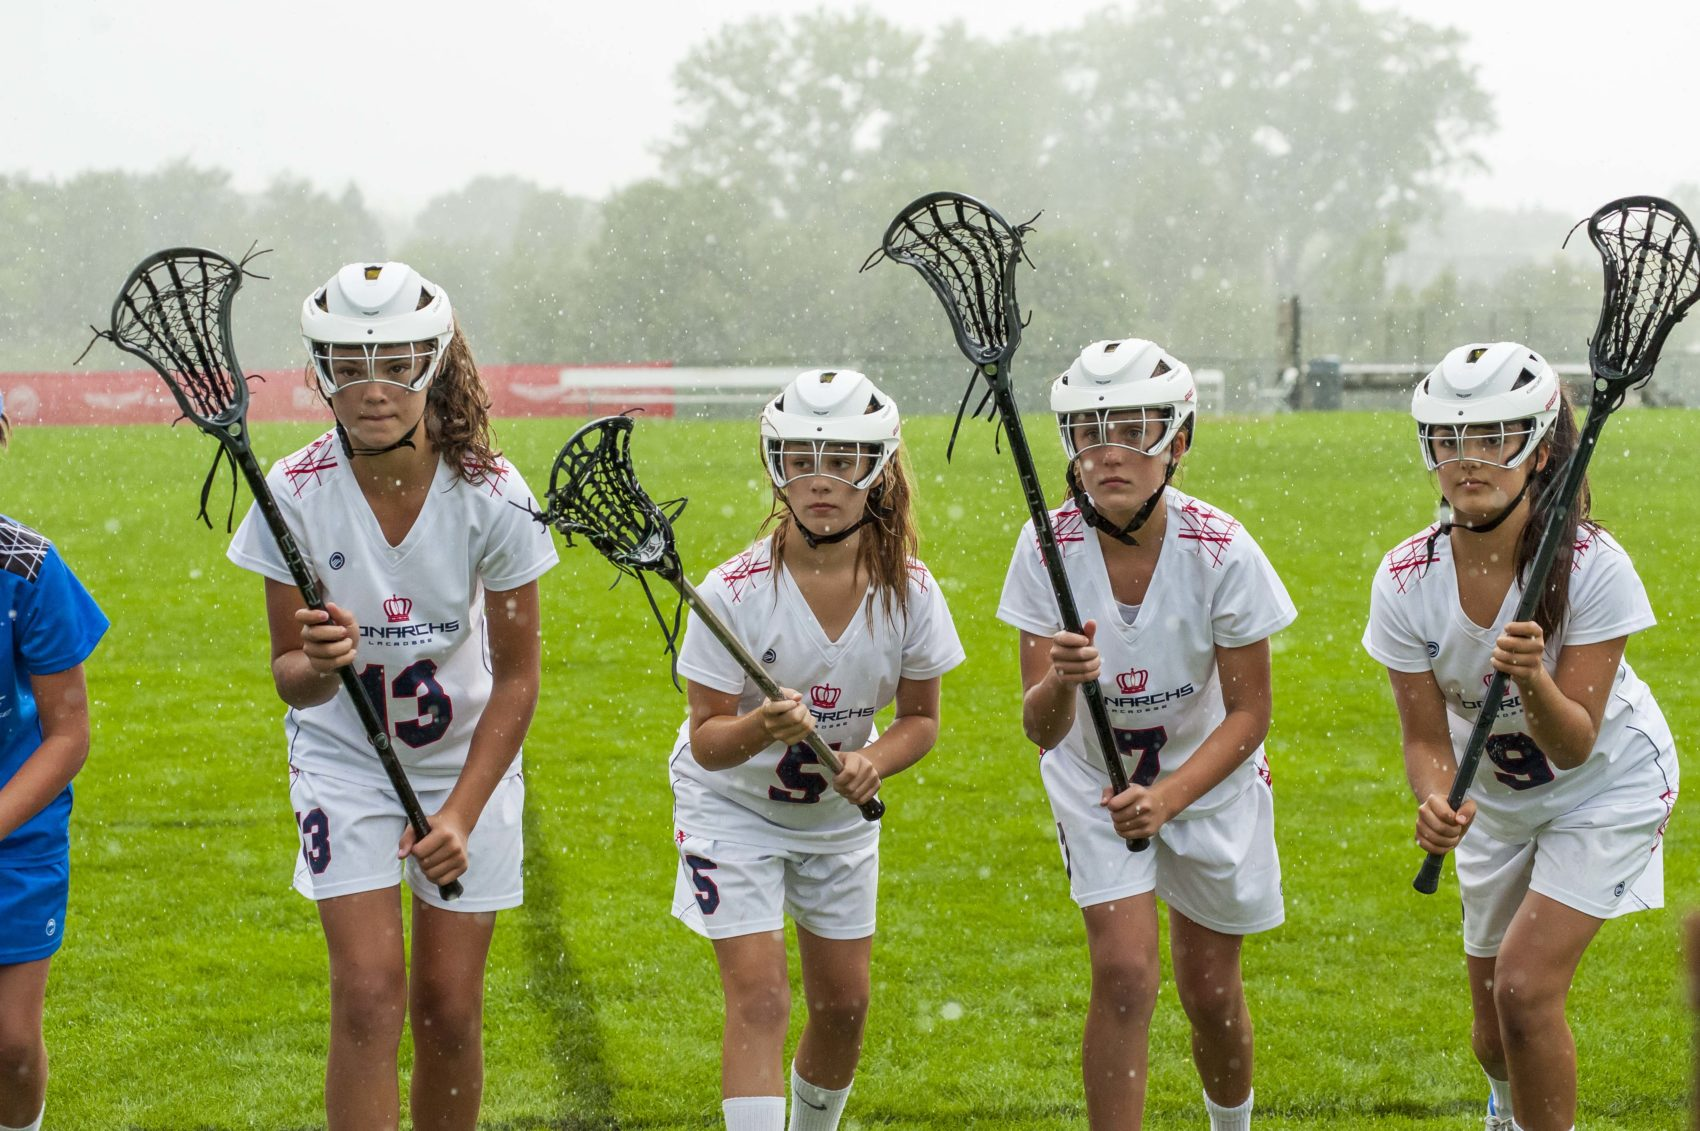 The Controversial History Of Headgear In Girls' Lacrosse